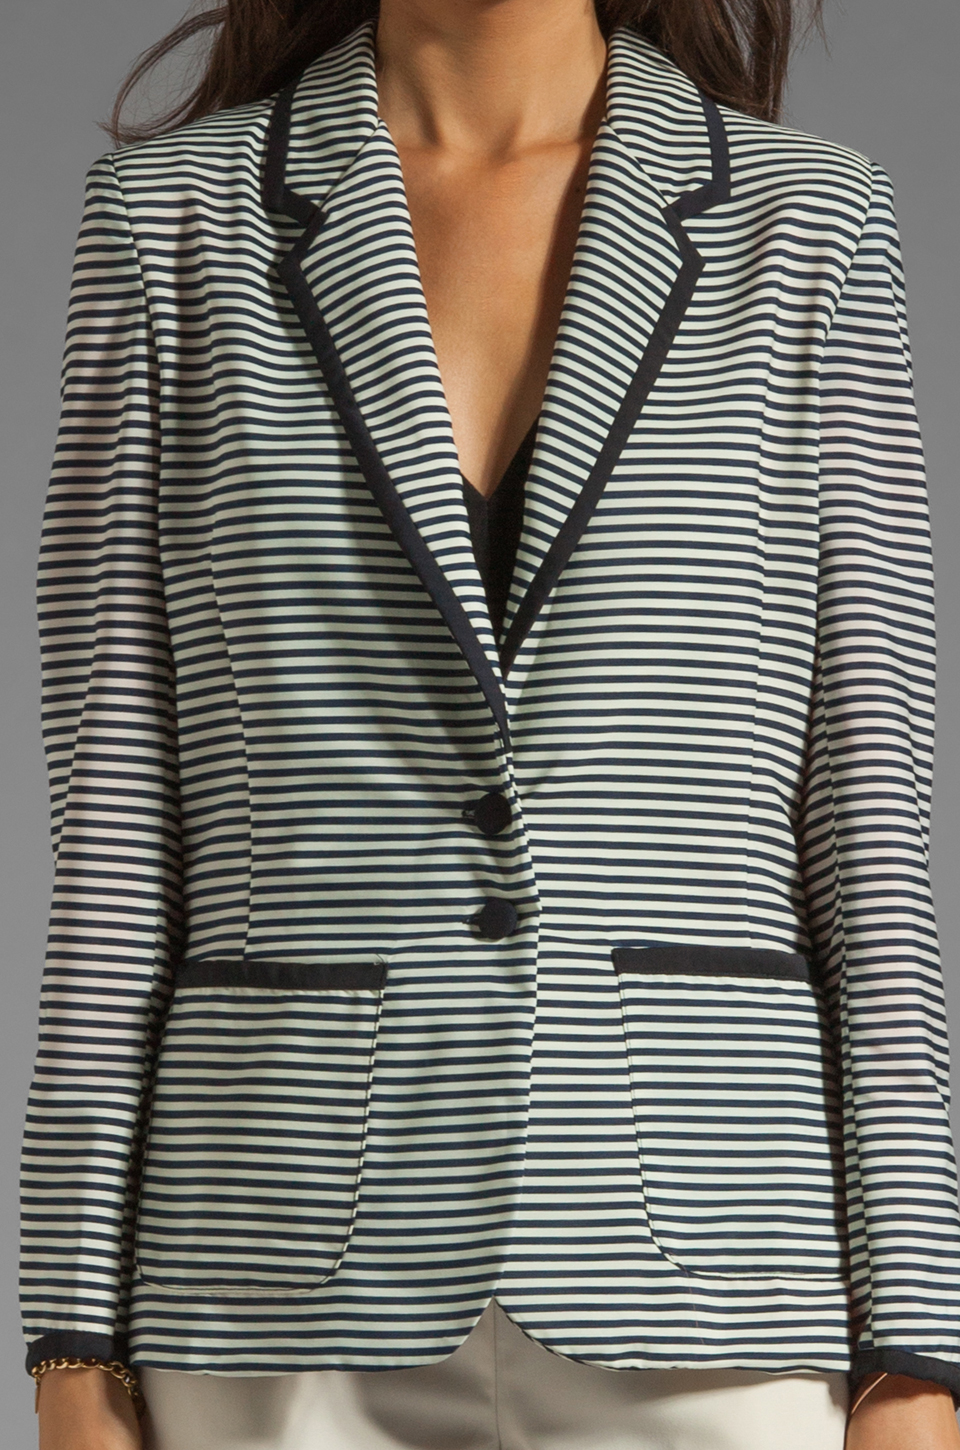 Lovers + Friends Lovers + Friends x BECAUSE IM ADDICTED Addicted to Love Blazer in Stripe